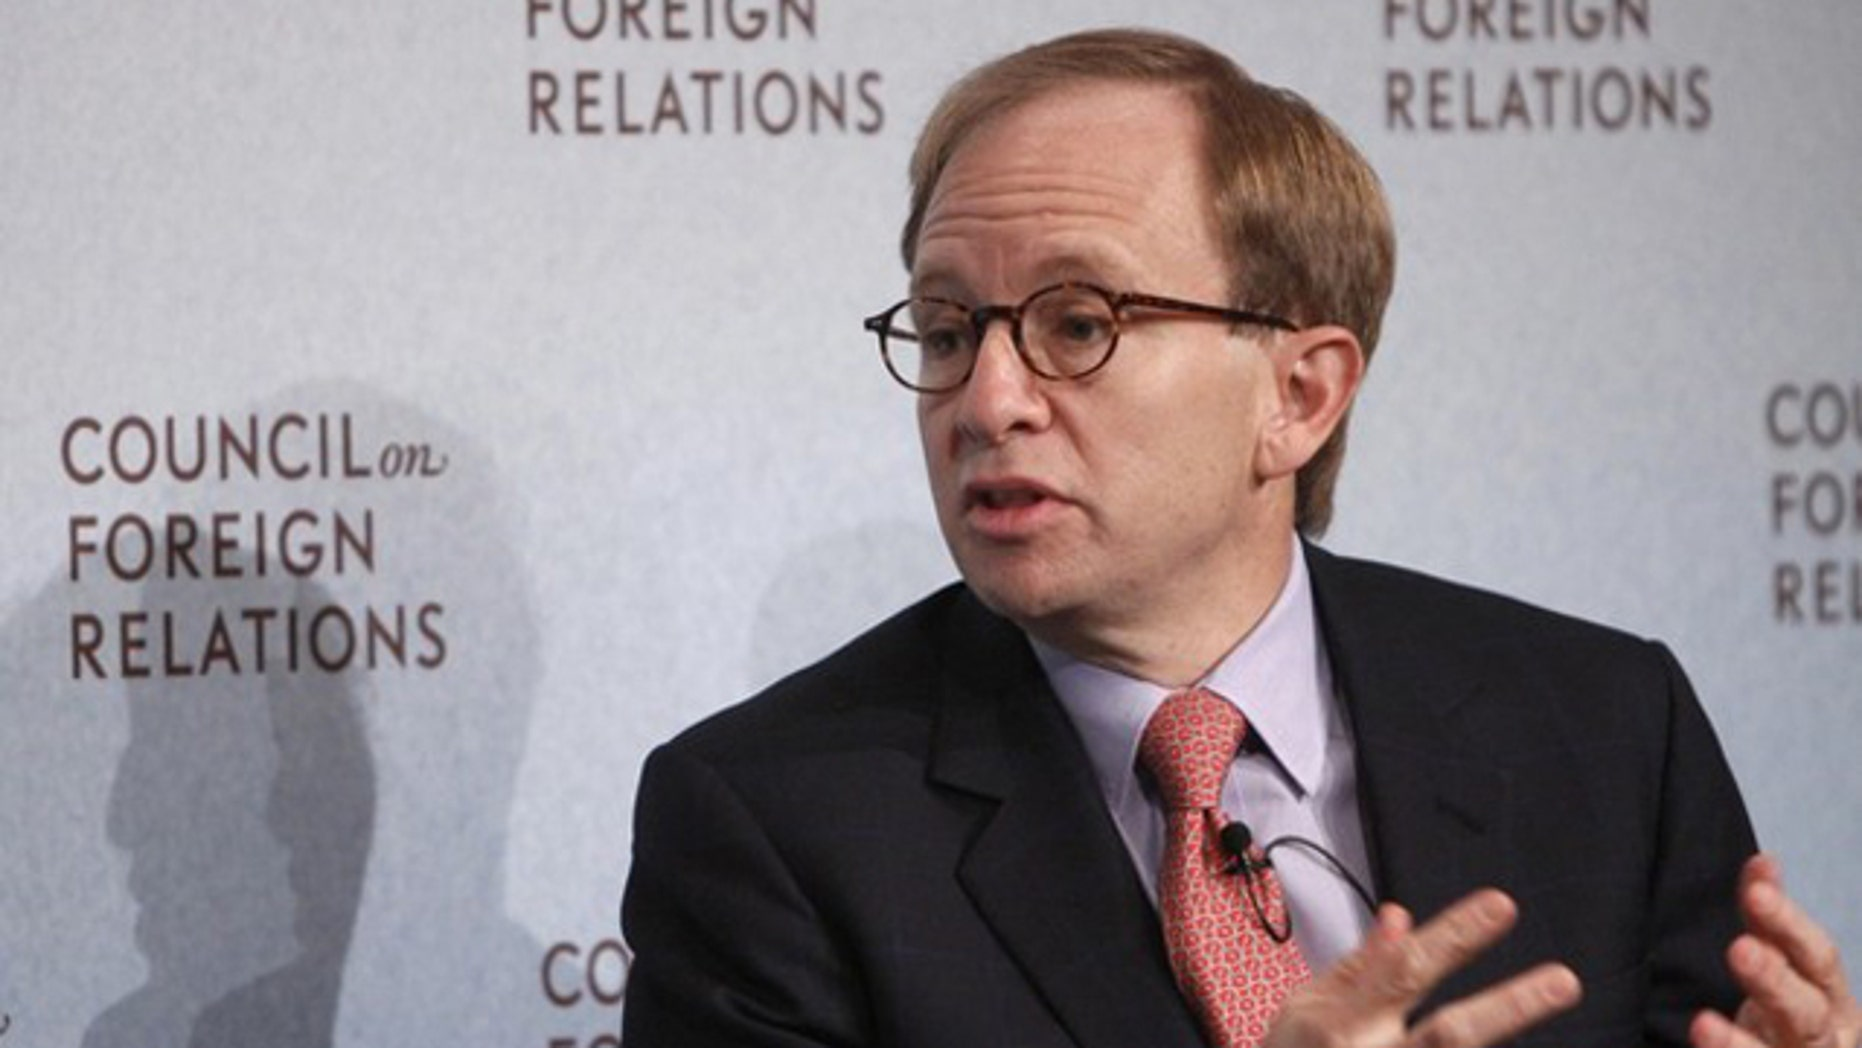 Steven Rattner, Former Head of U.S. Treasury Department's Auto Task Force, speaks at the Council on Foreign Relations in New York, November 19, 2009. (Reuters)